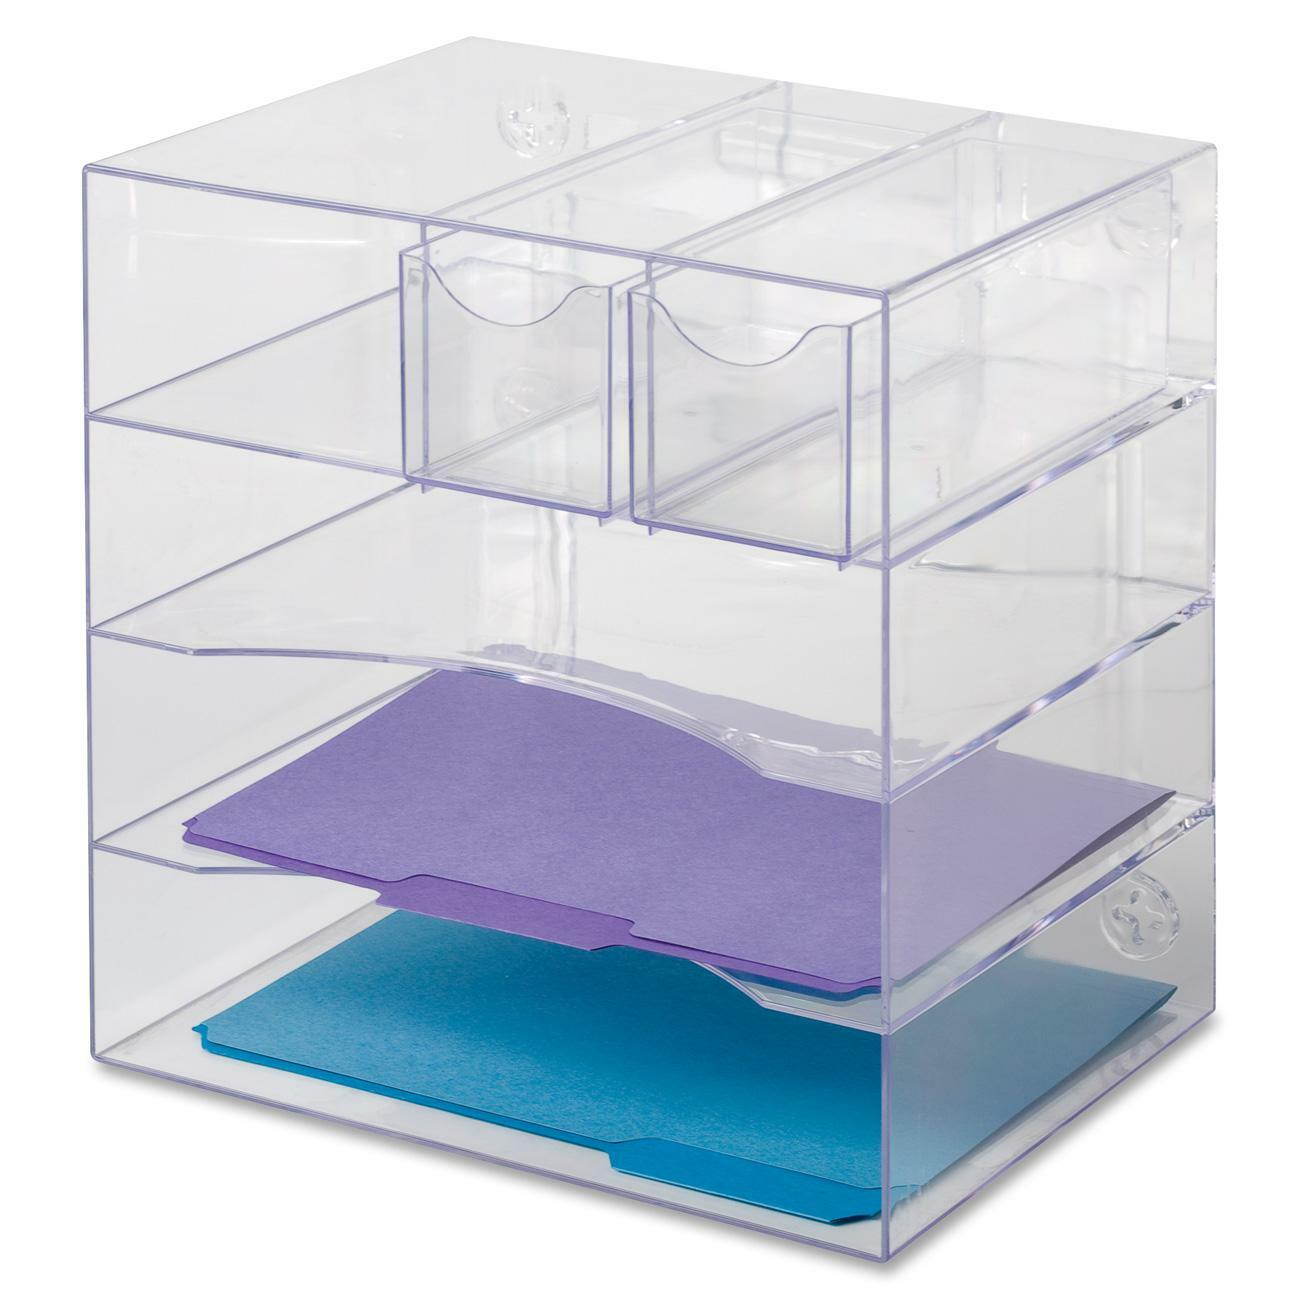 Versatile Four Way Organizer Features Three Trays To Hold Letter Size And A4 Doents Folders Two Fully Removable Drawers Paper Clips